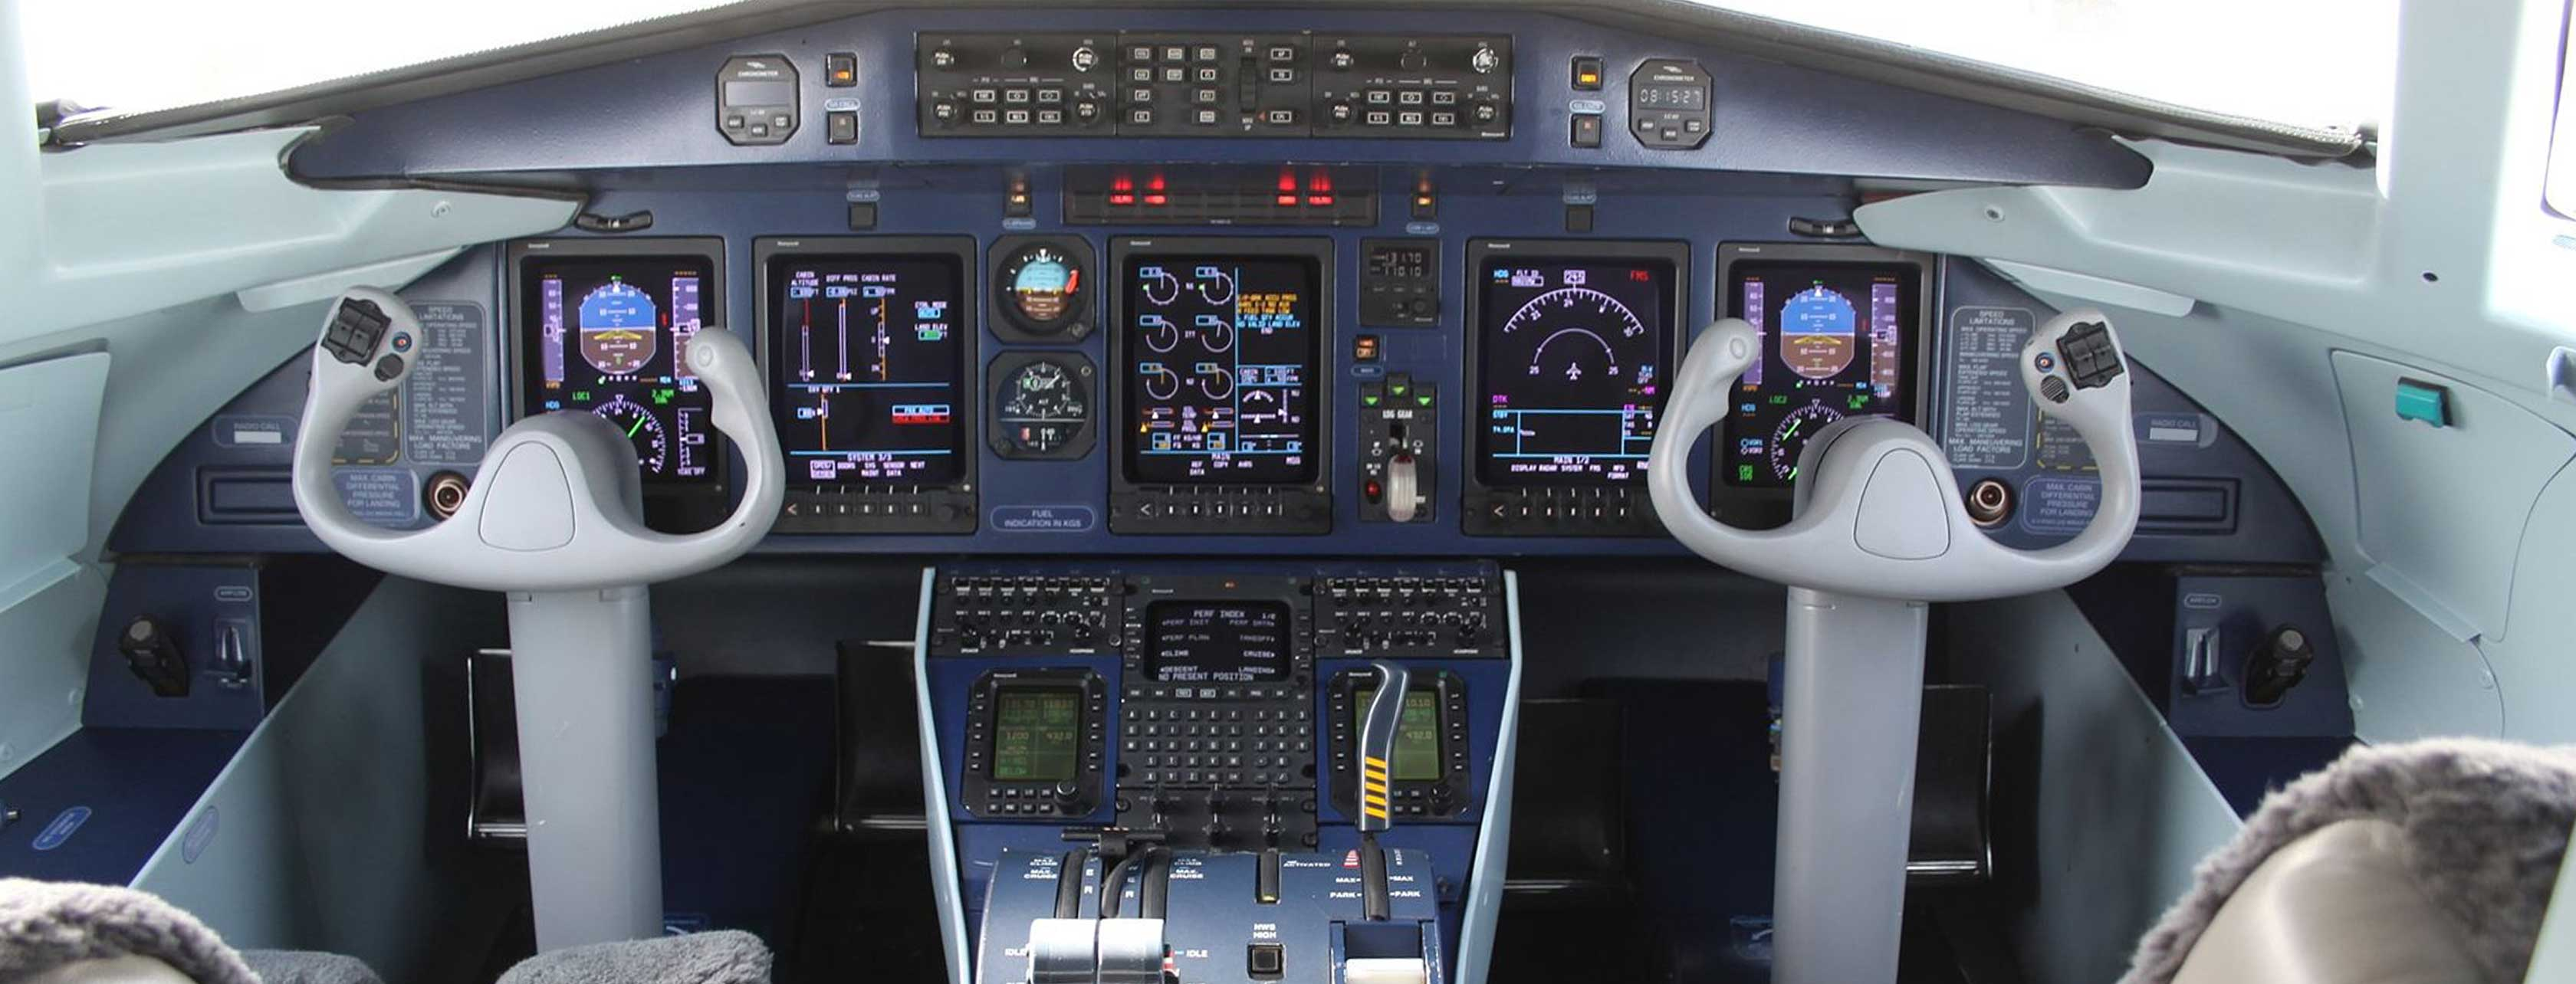 Dornier 328 Flight Deck